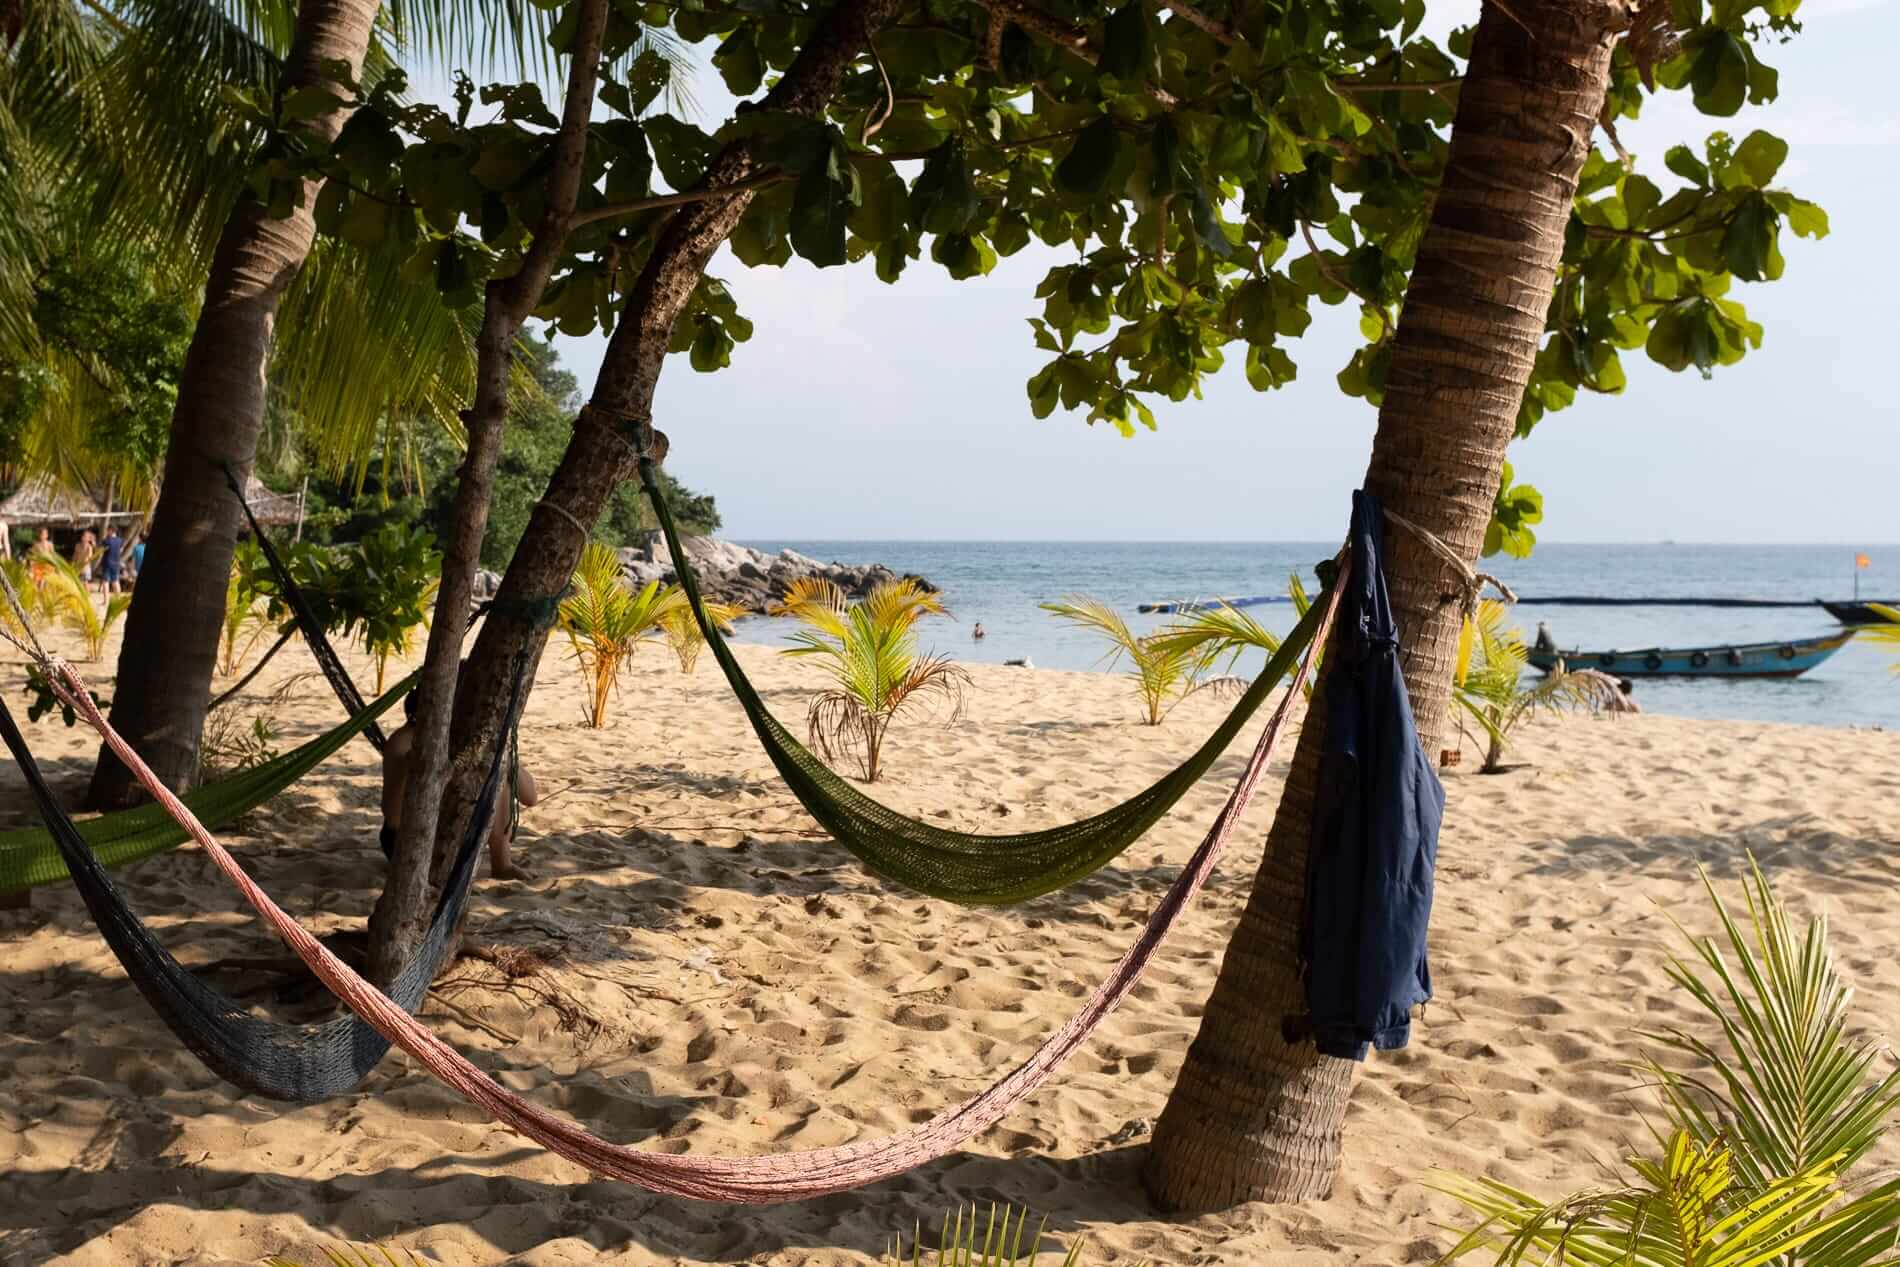 Hammocks strung between palm trees on the Cham Islands